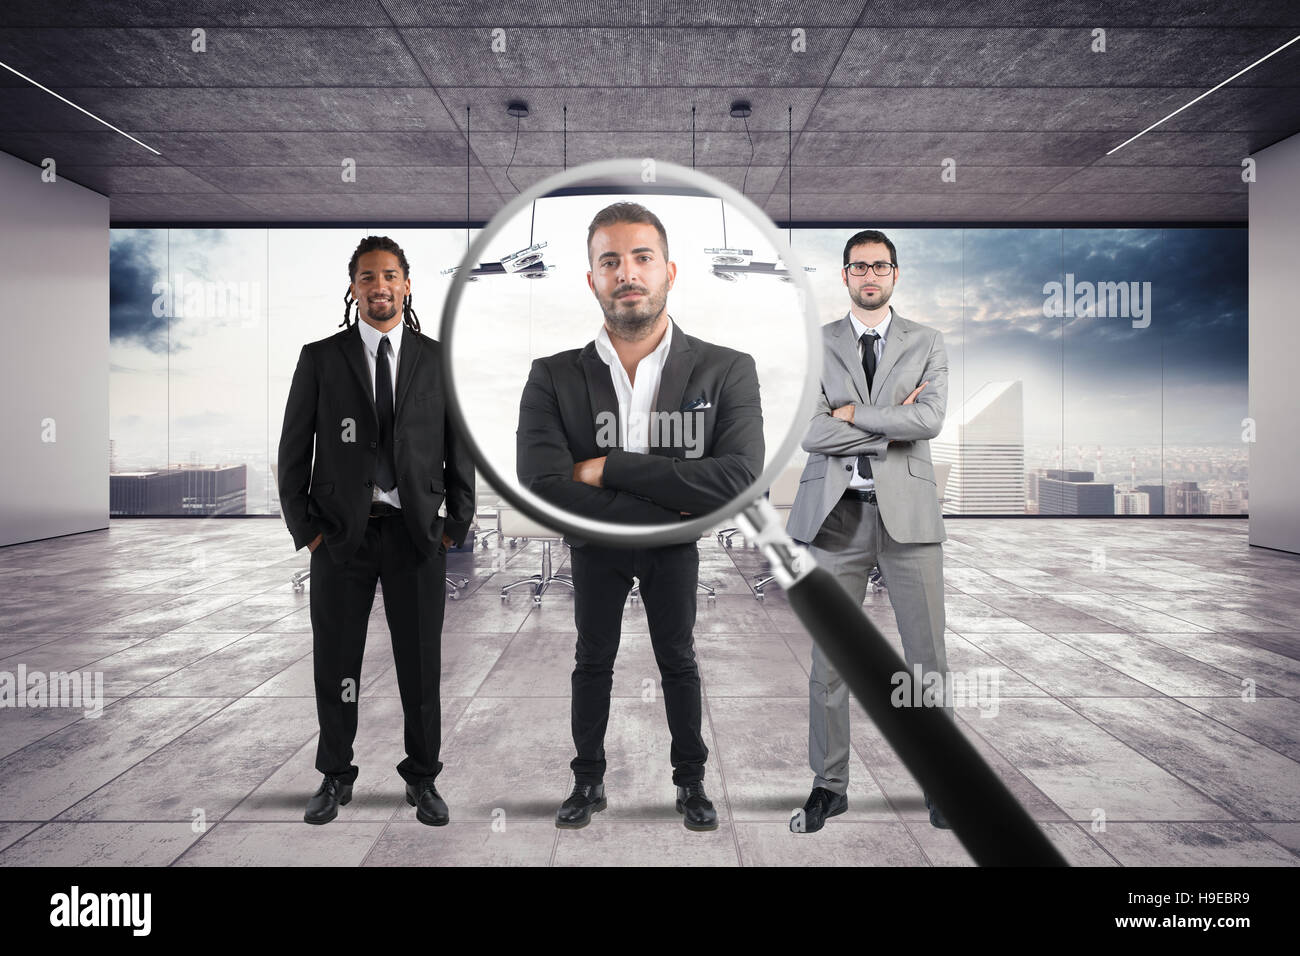 Recruitment and select candidates - Stock Image